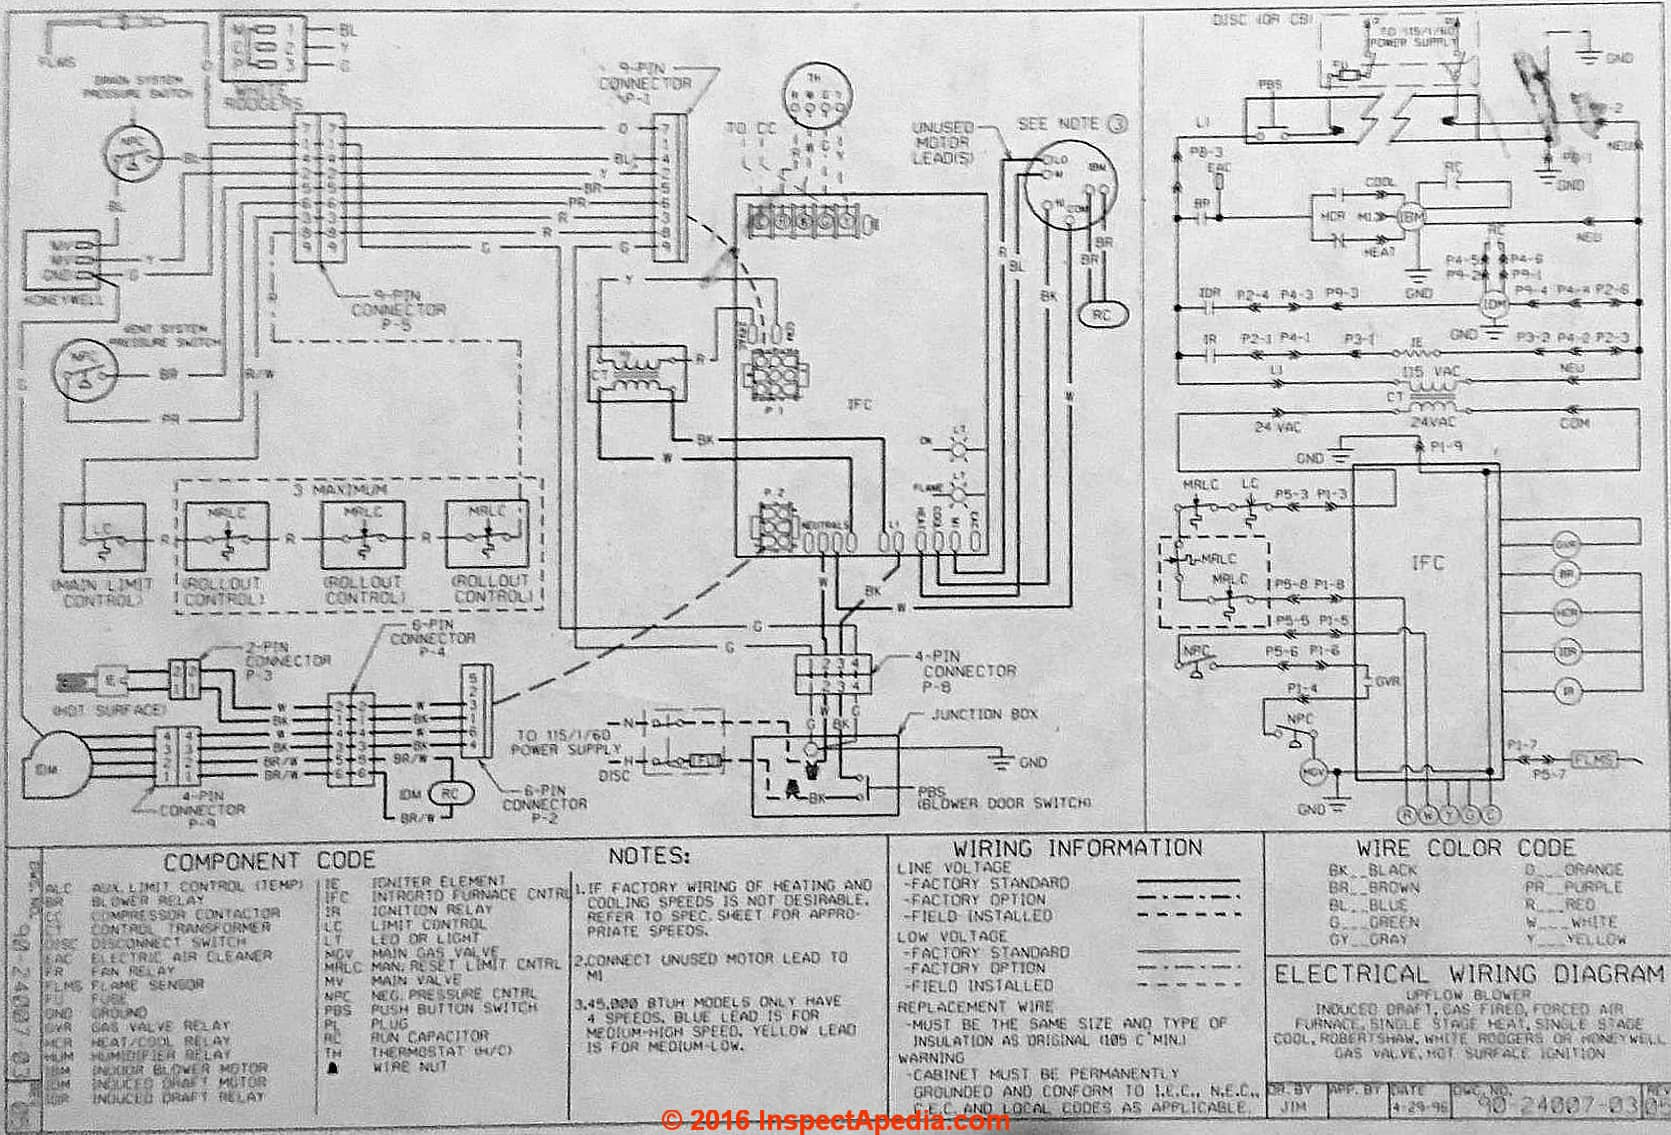 Rheem_AHU_Wiring_Diagram_IAP air conditioner heat pump faqs true comfort wiring diagram at webbmarketing.co